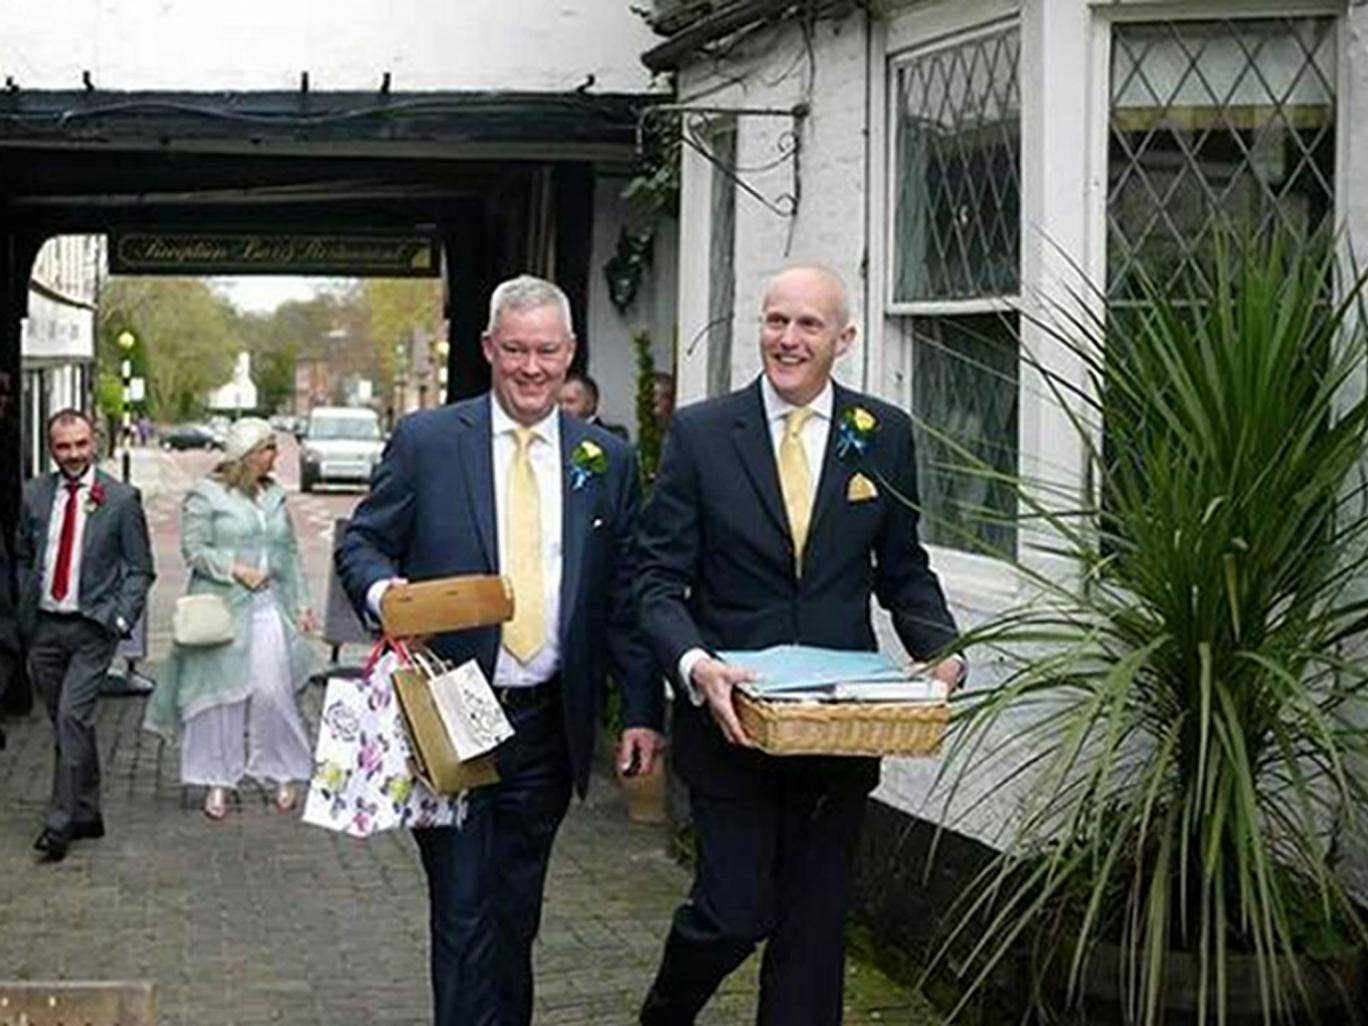 Canon Jeremy Pemberton, left, with Laurence Cunnington, right, after their marriage in April 2014